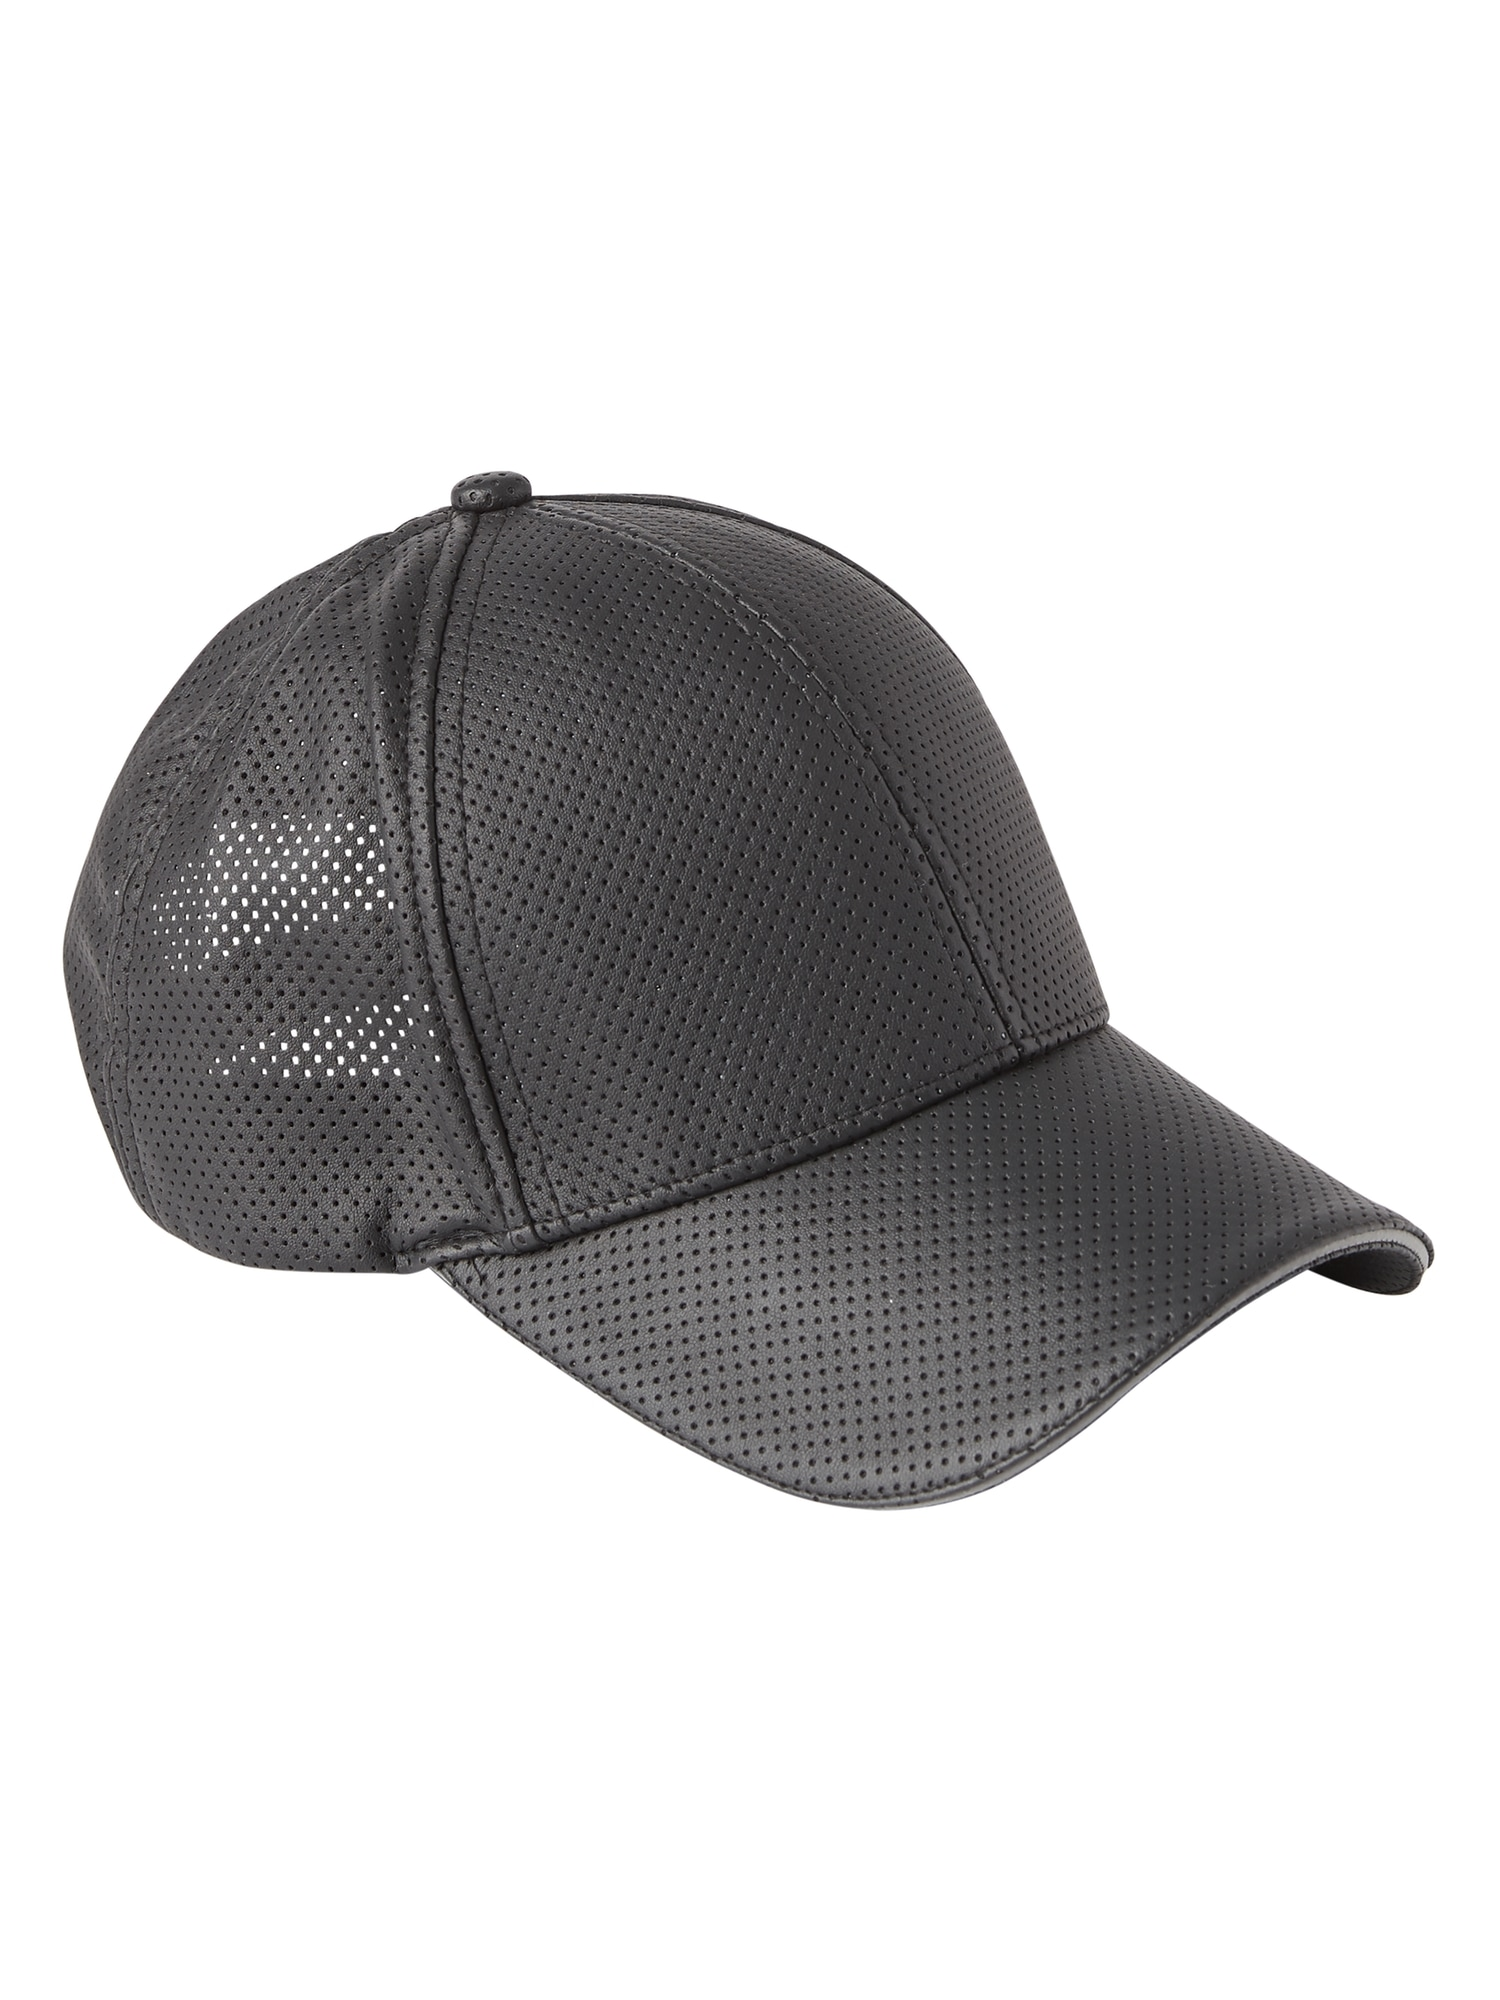 Perforated Faux Leather Baseball Cap  16722f82a4d